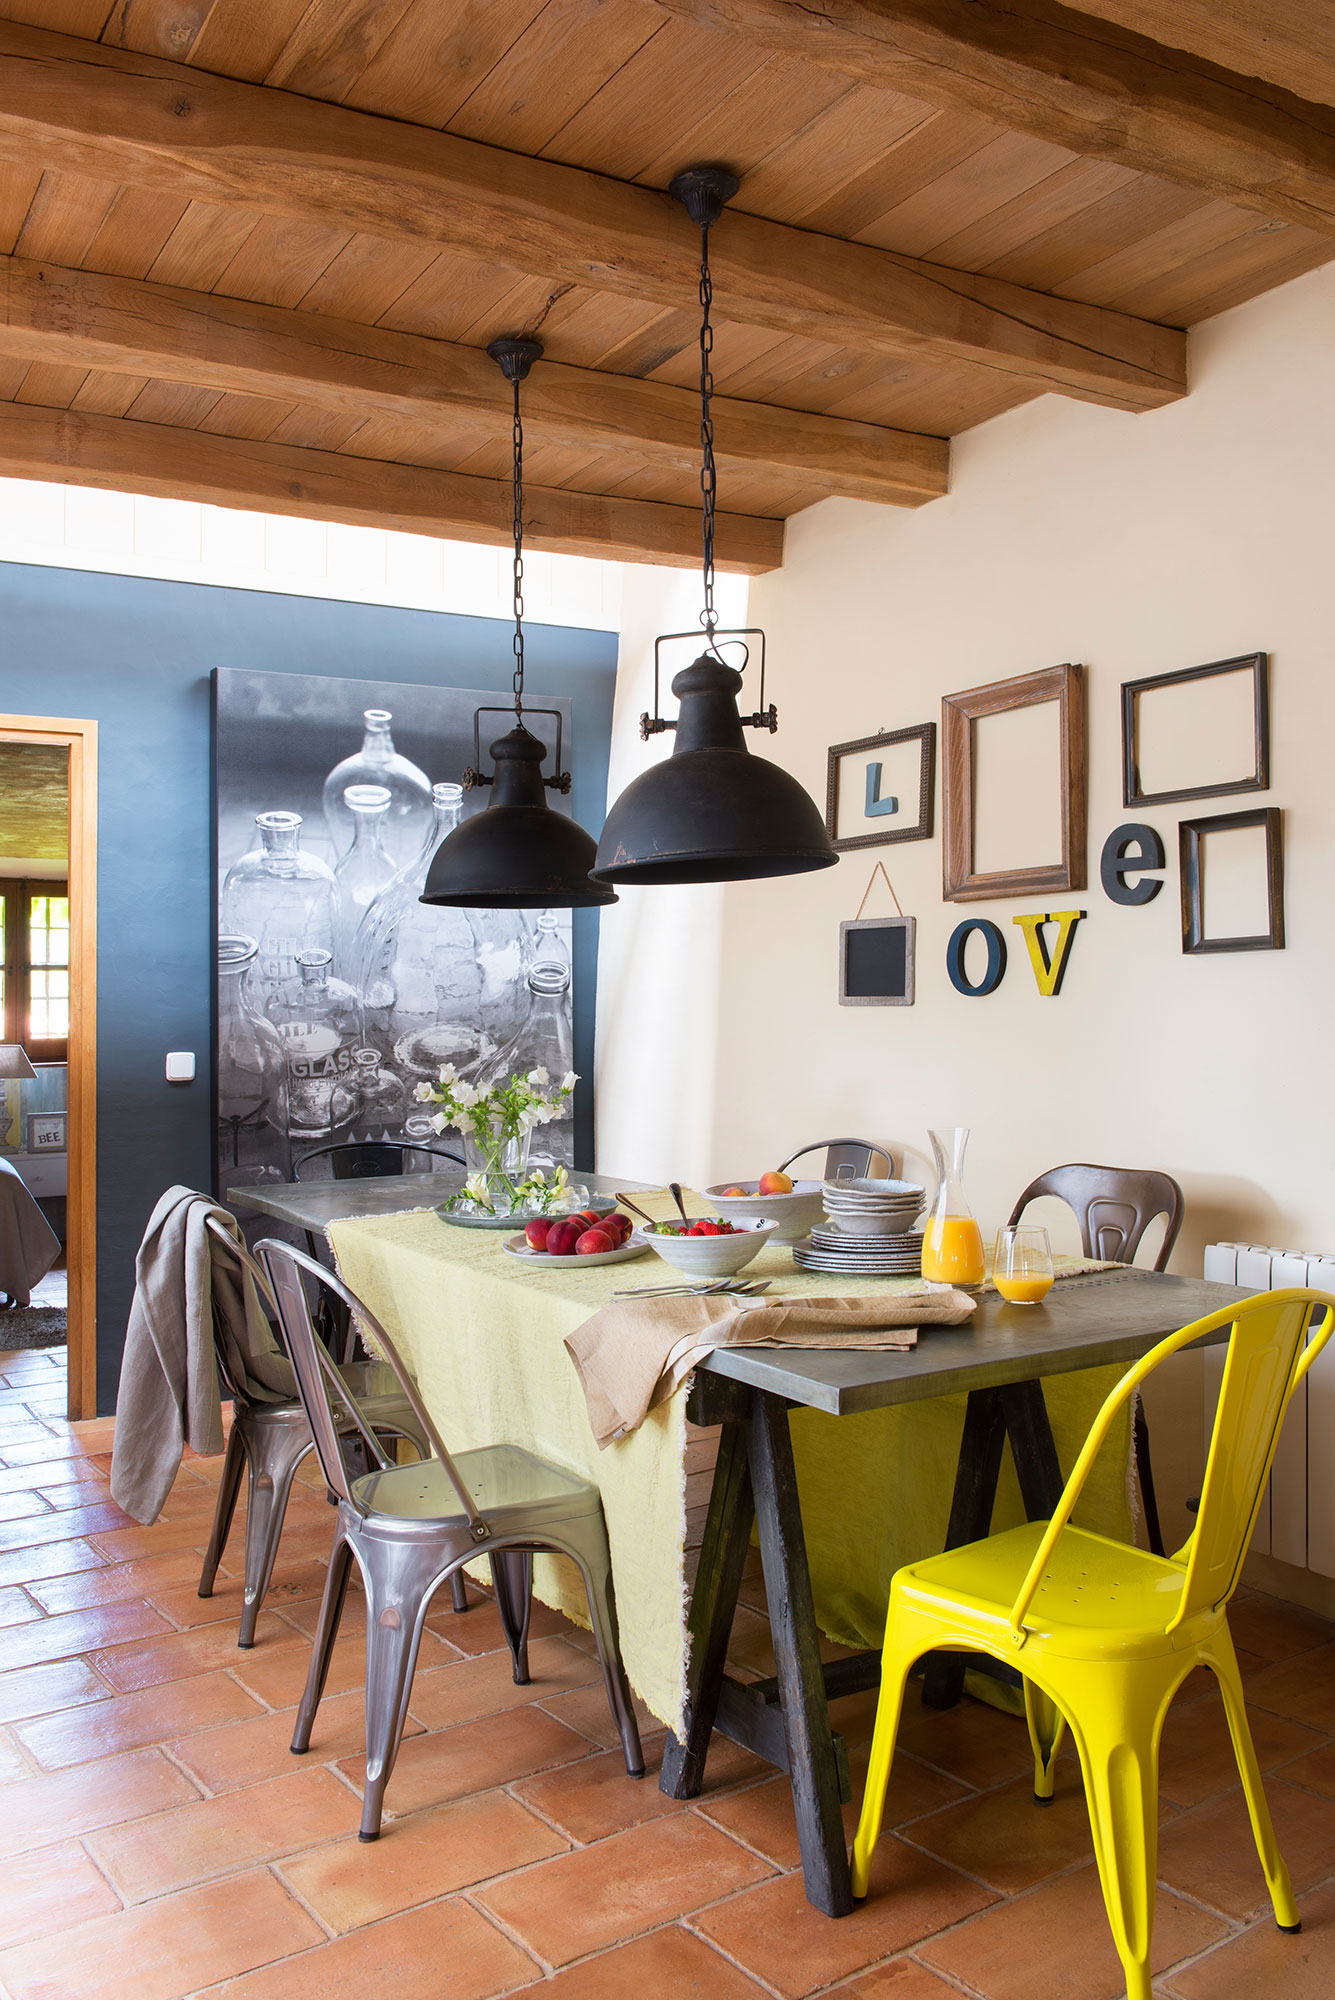 Comedor con pared negra y mesa y sillas de look industrial. Look industrial.